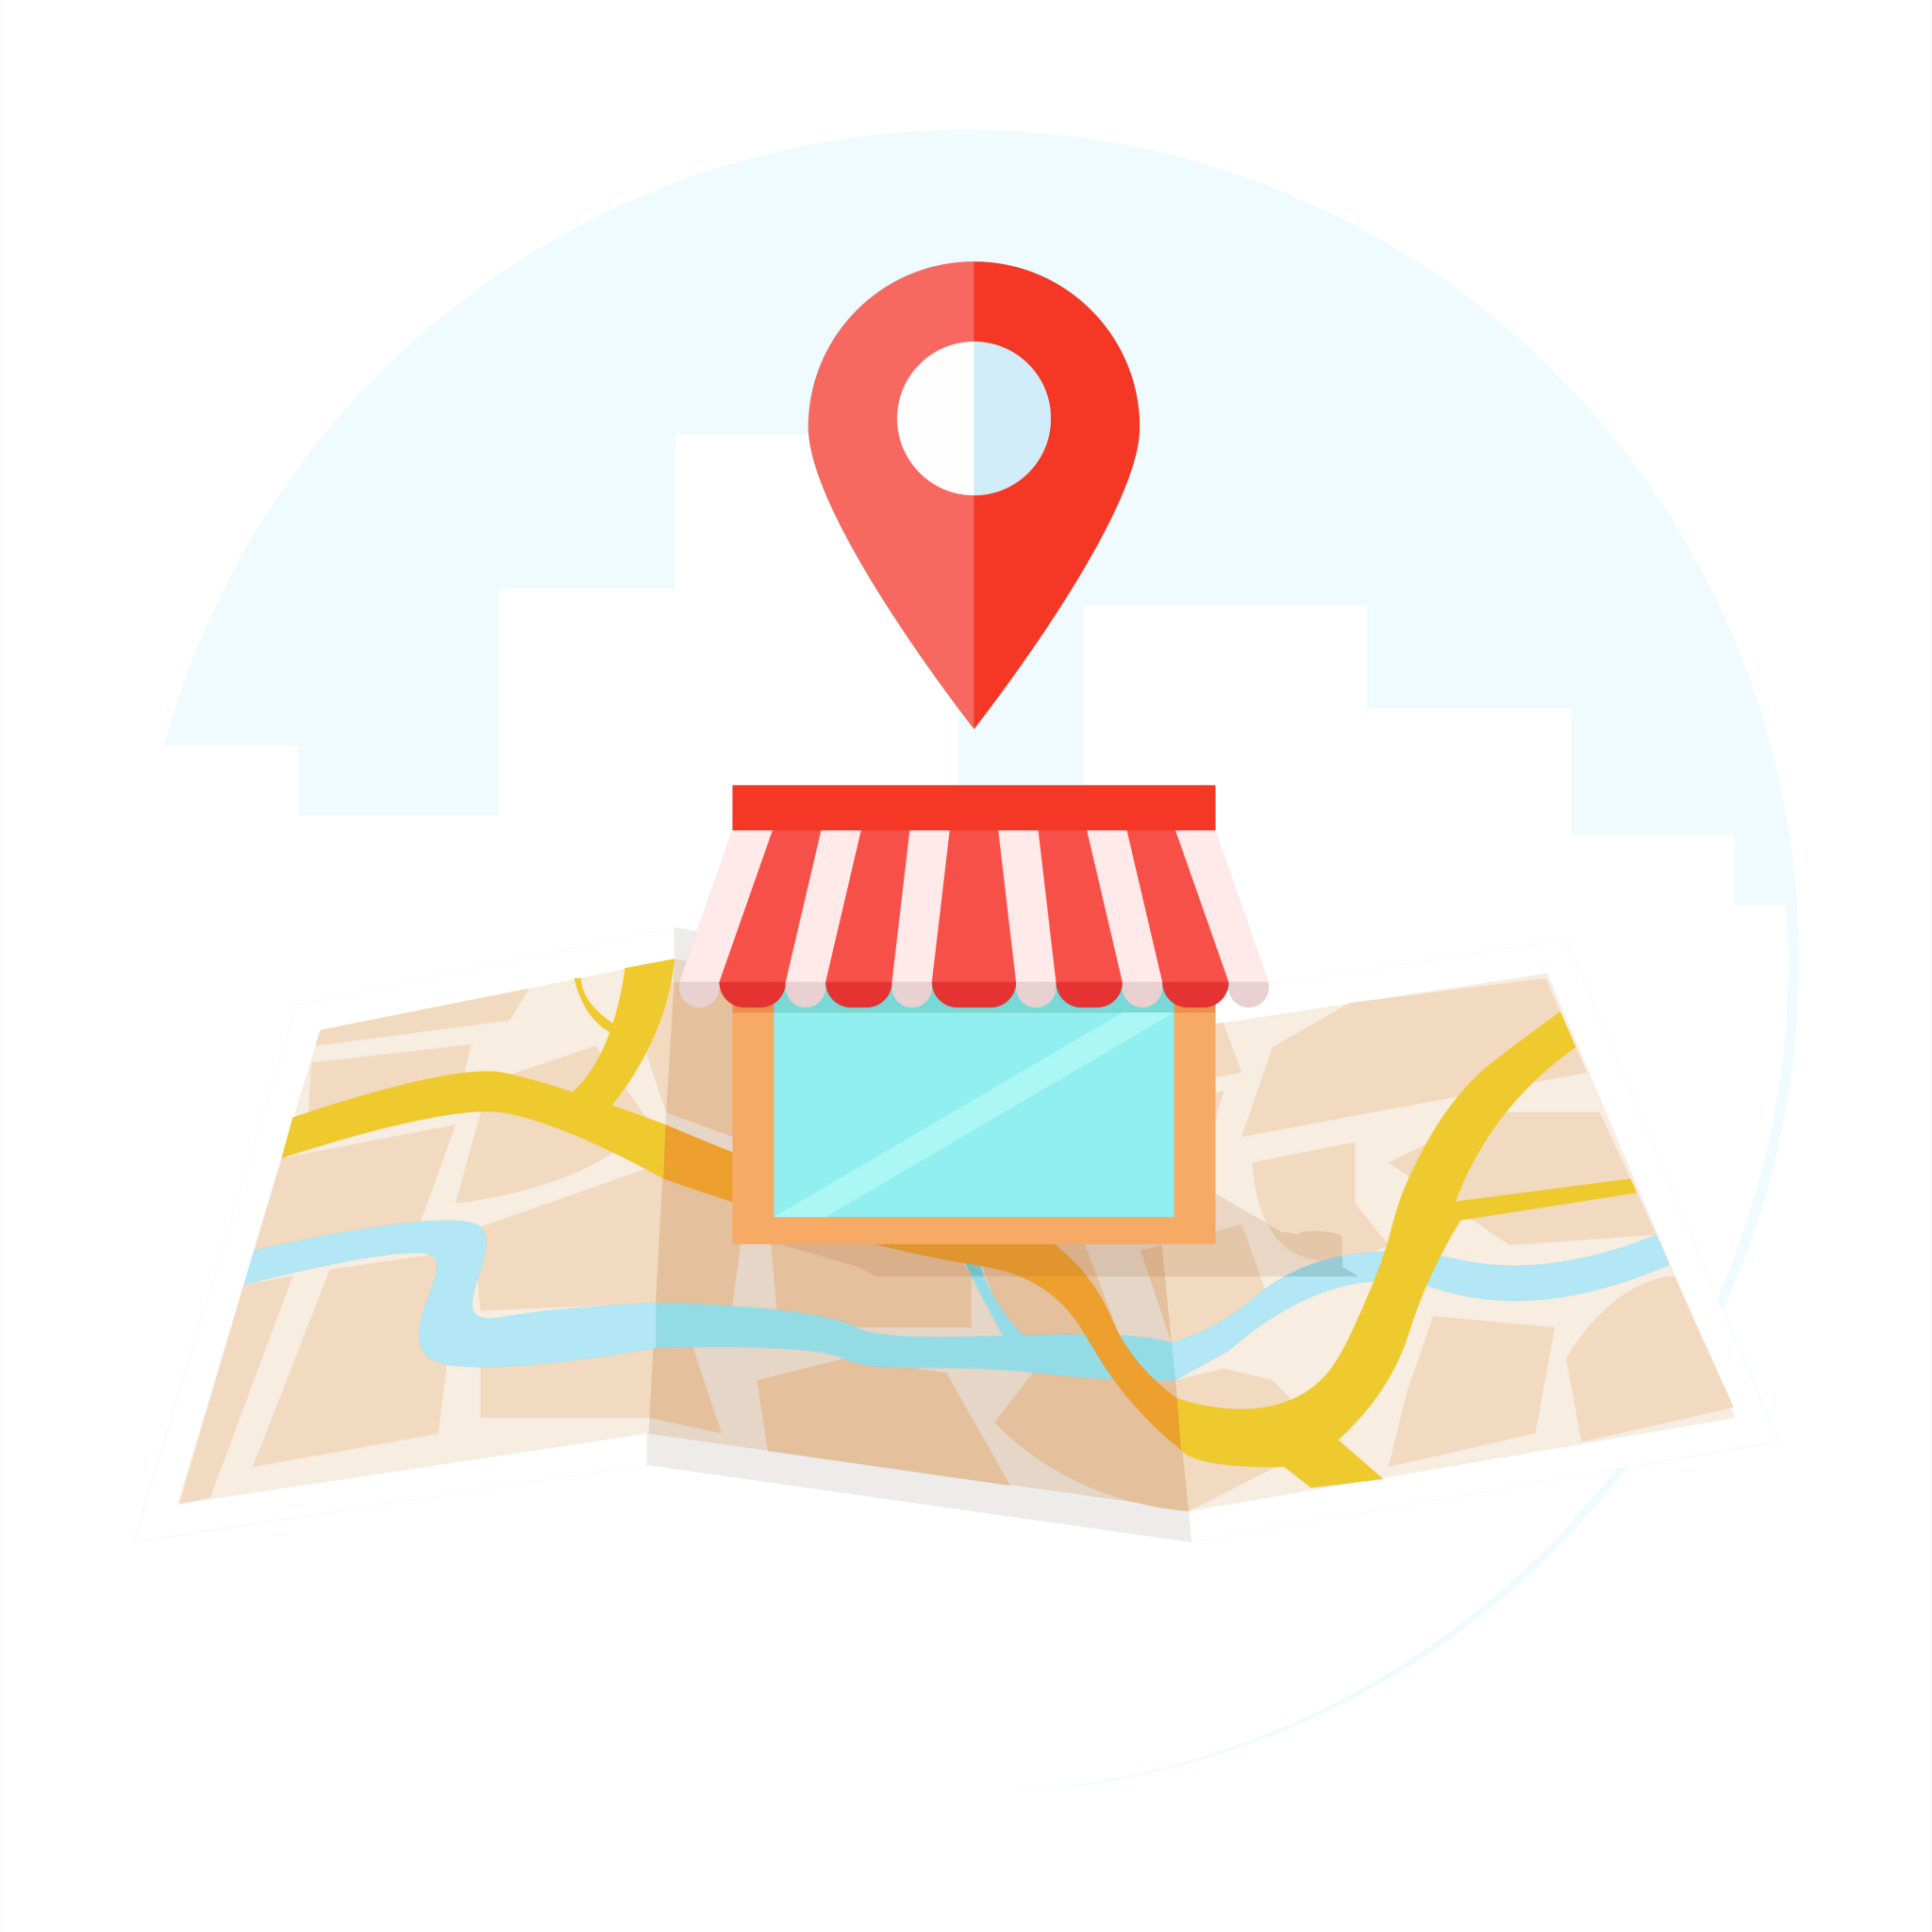 Location indicator on the map icon